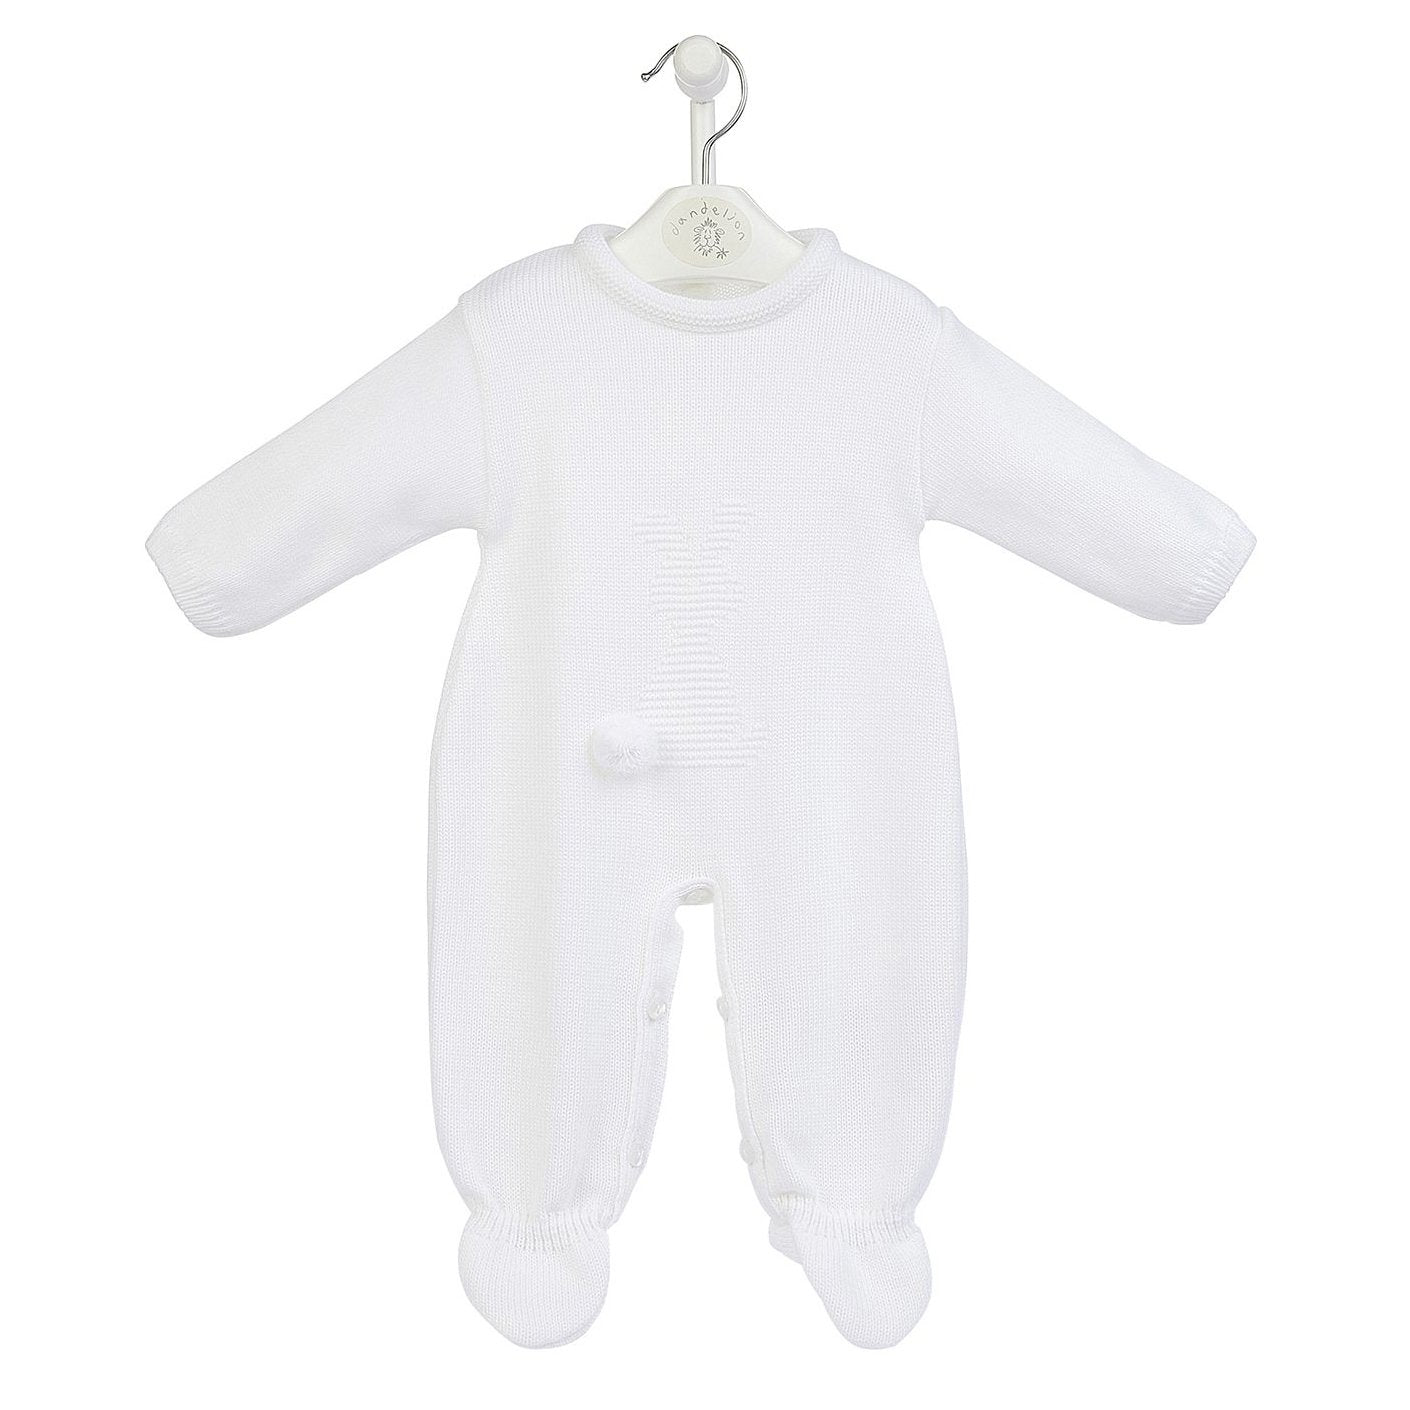 Dandelion White Bobtail Bunny Knitted Onesie | Millie and John